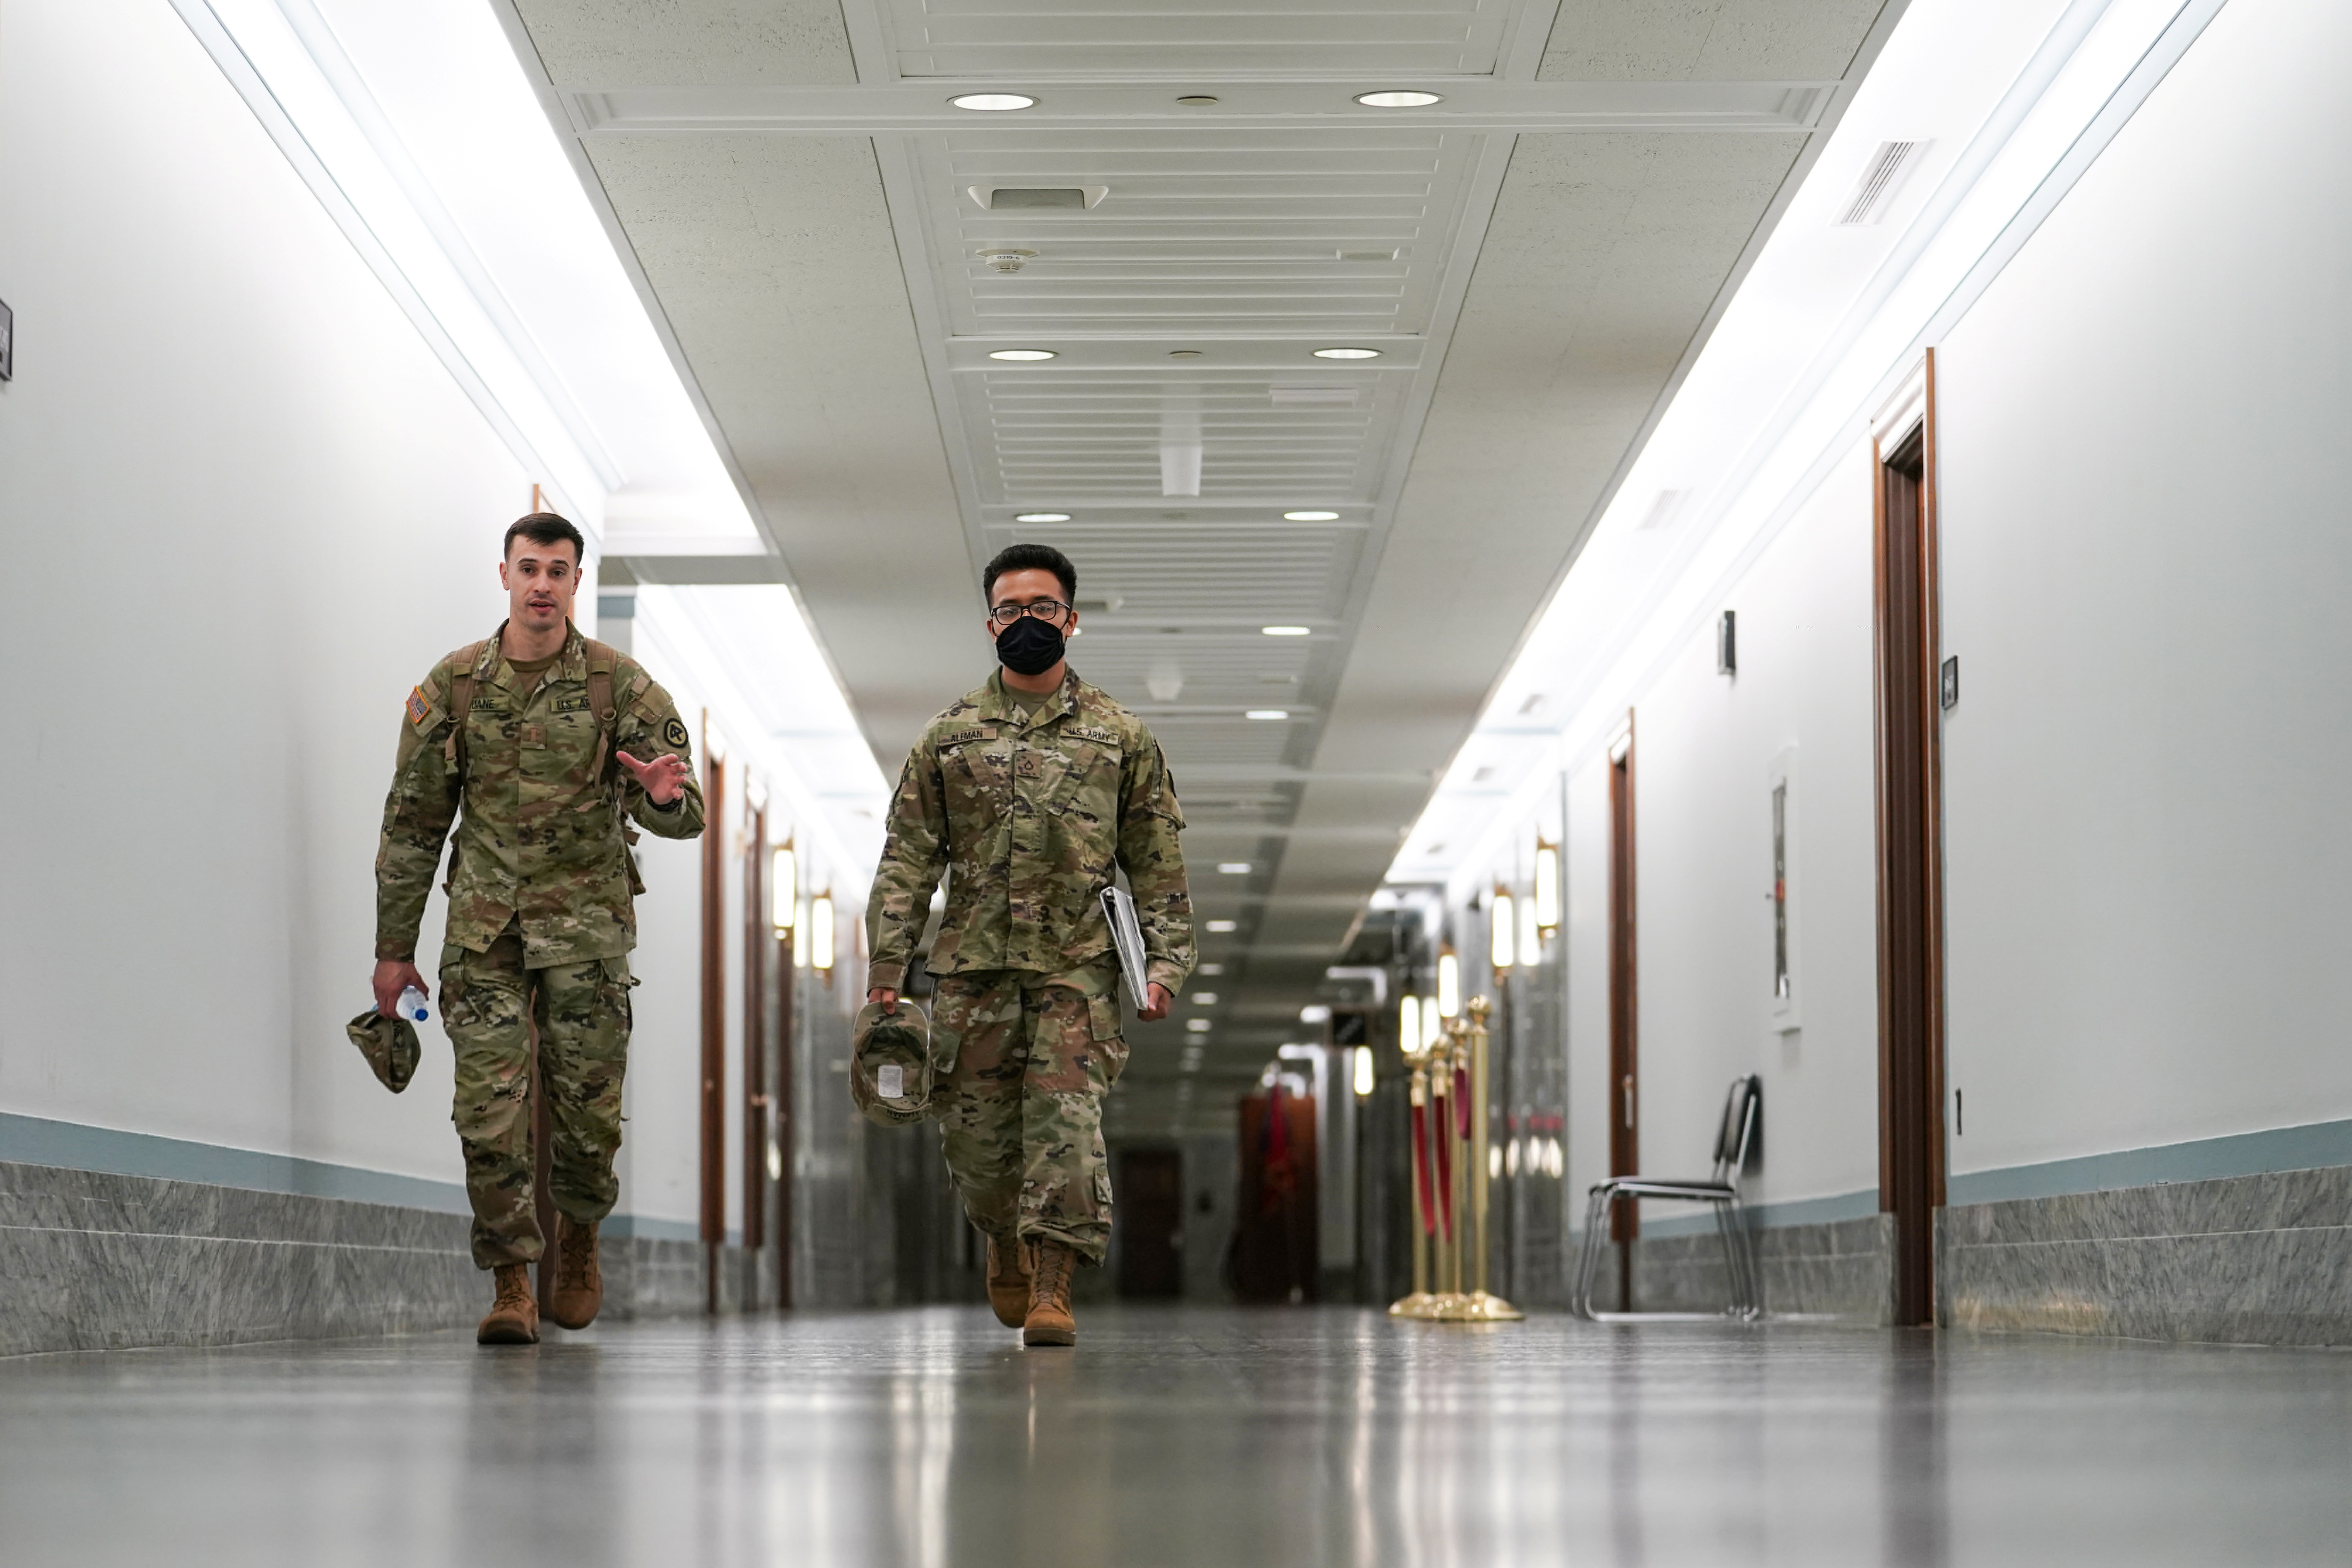 Members of the National Guard walk in the Dirksen Senate Office Building on Capitol Hill on the final days of their deployment following the January 6 Capitol riots in Washington, U.S., May 23, 2021. REUTERS/Sarah Silbiger